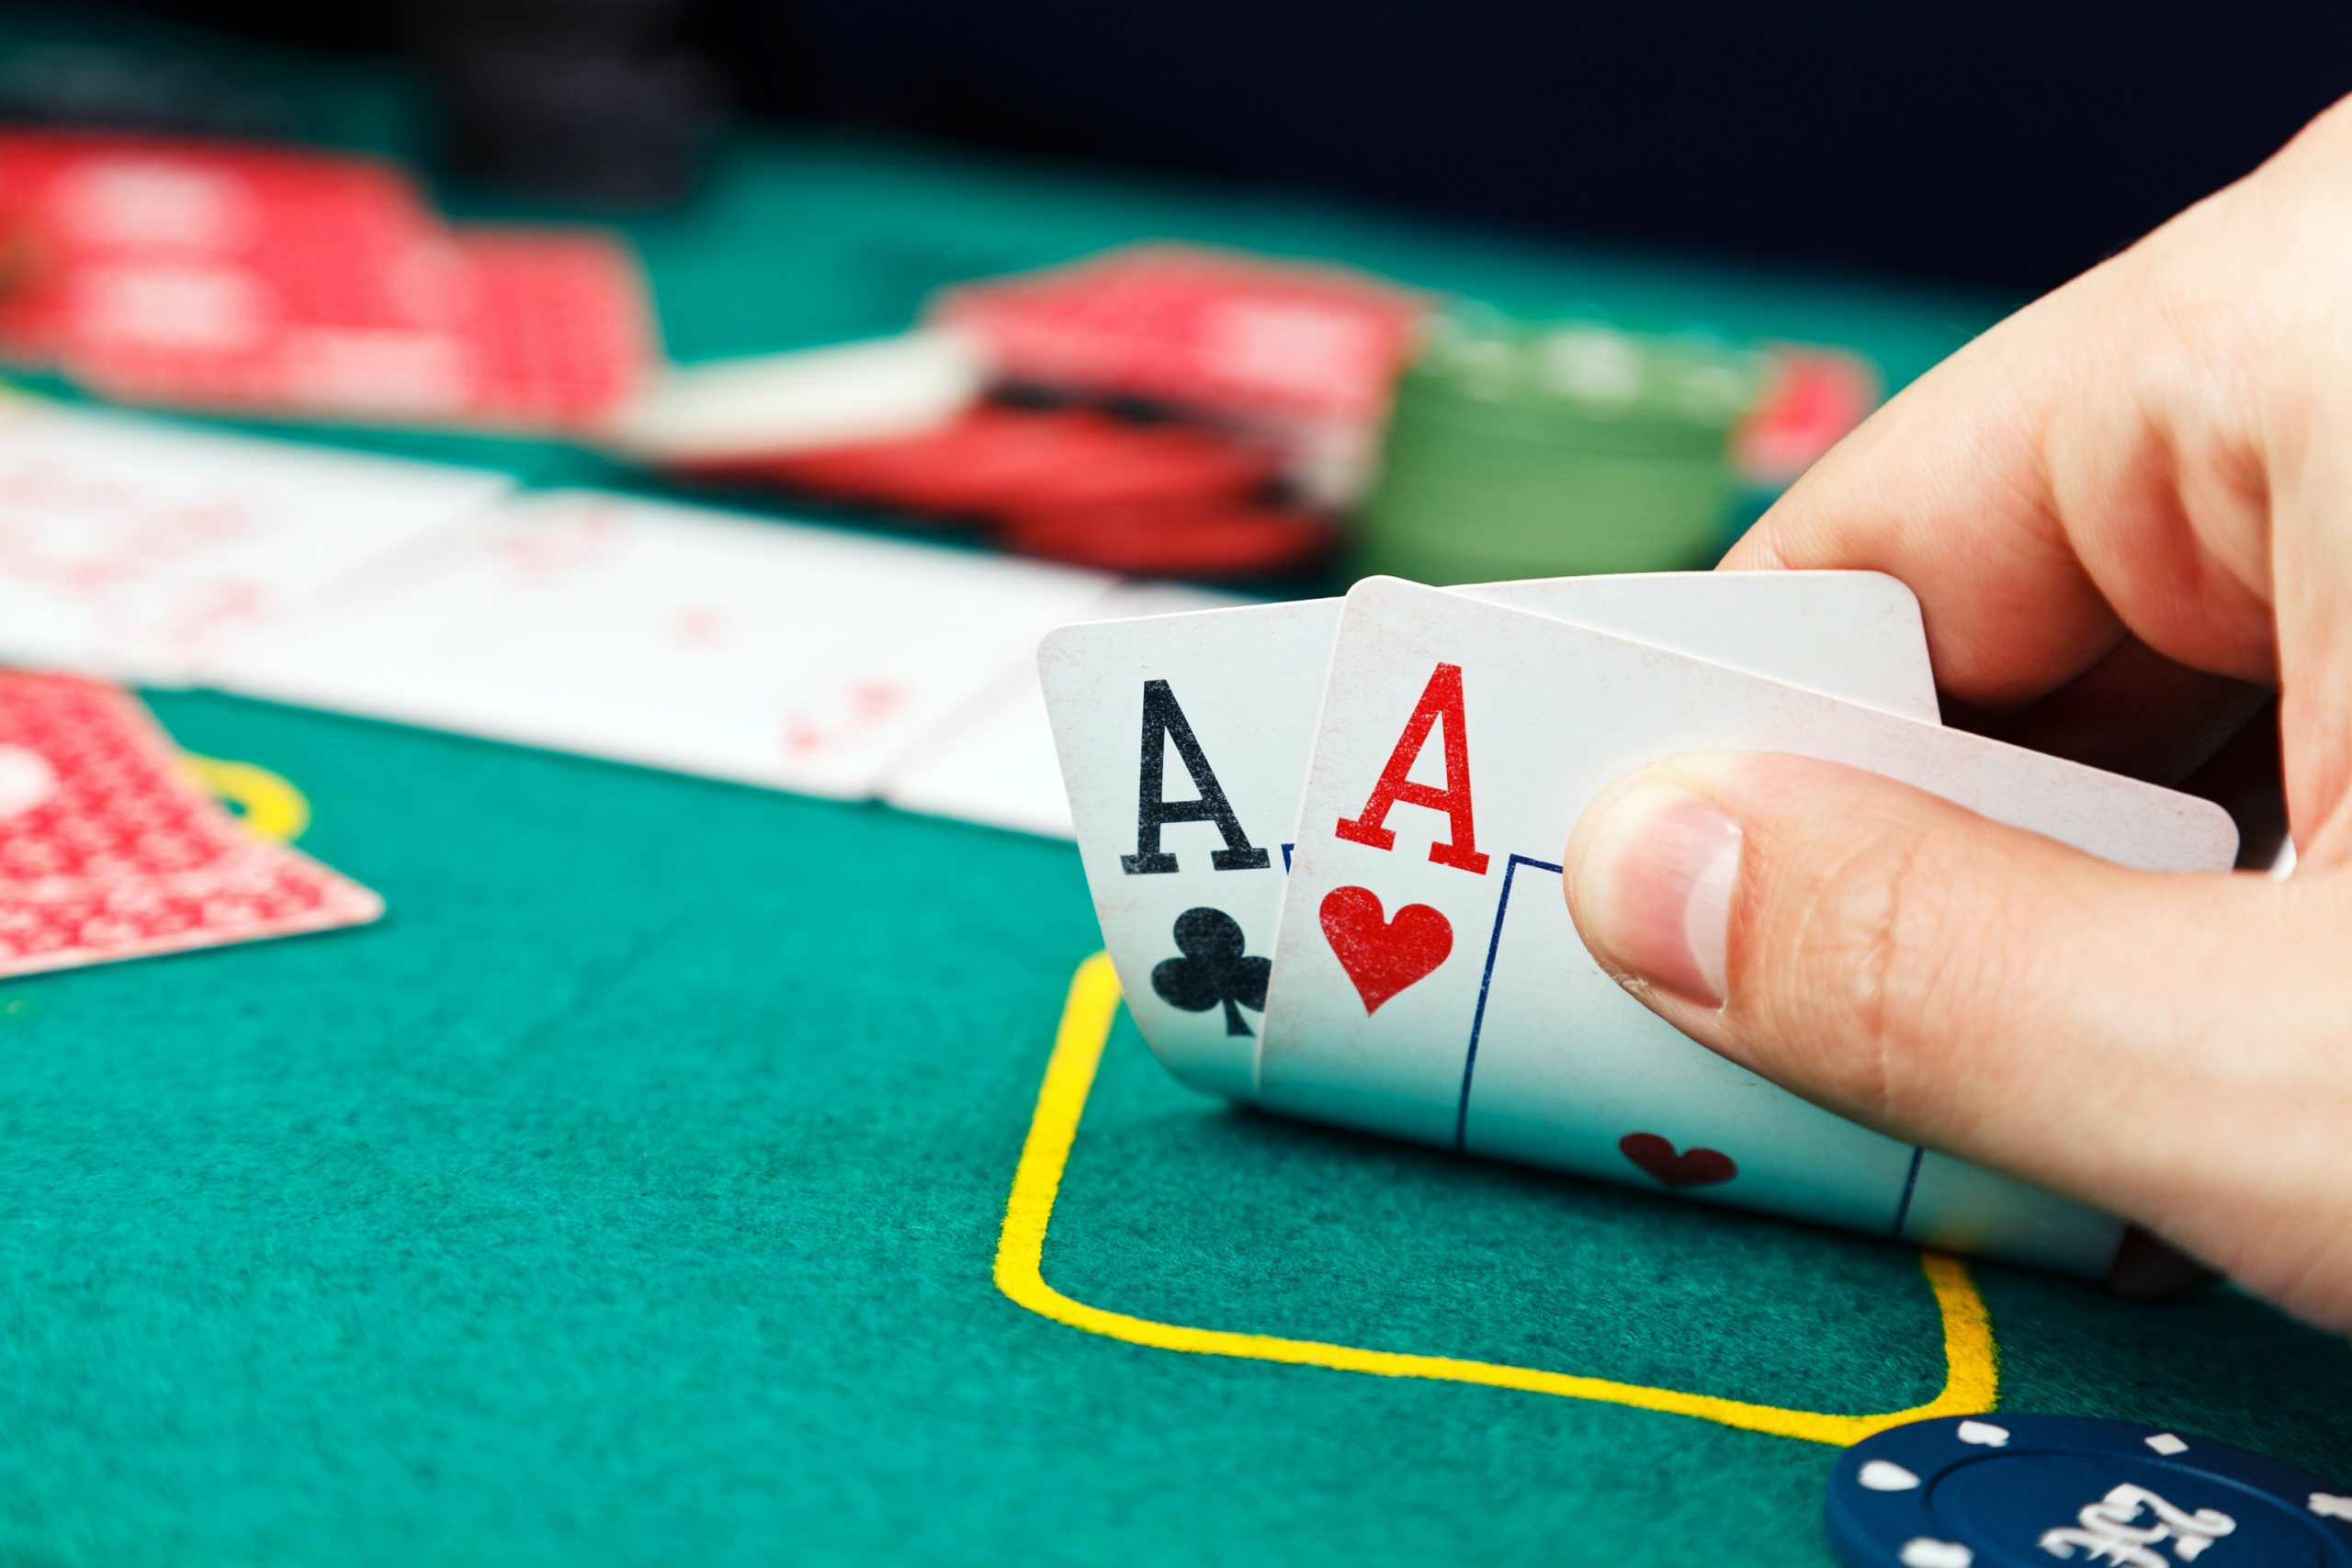 How To Take Care Of A Very Terrible Gambling